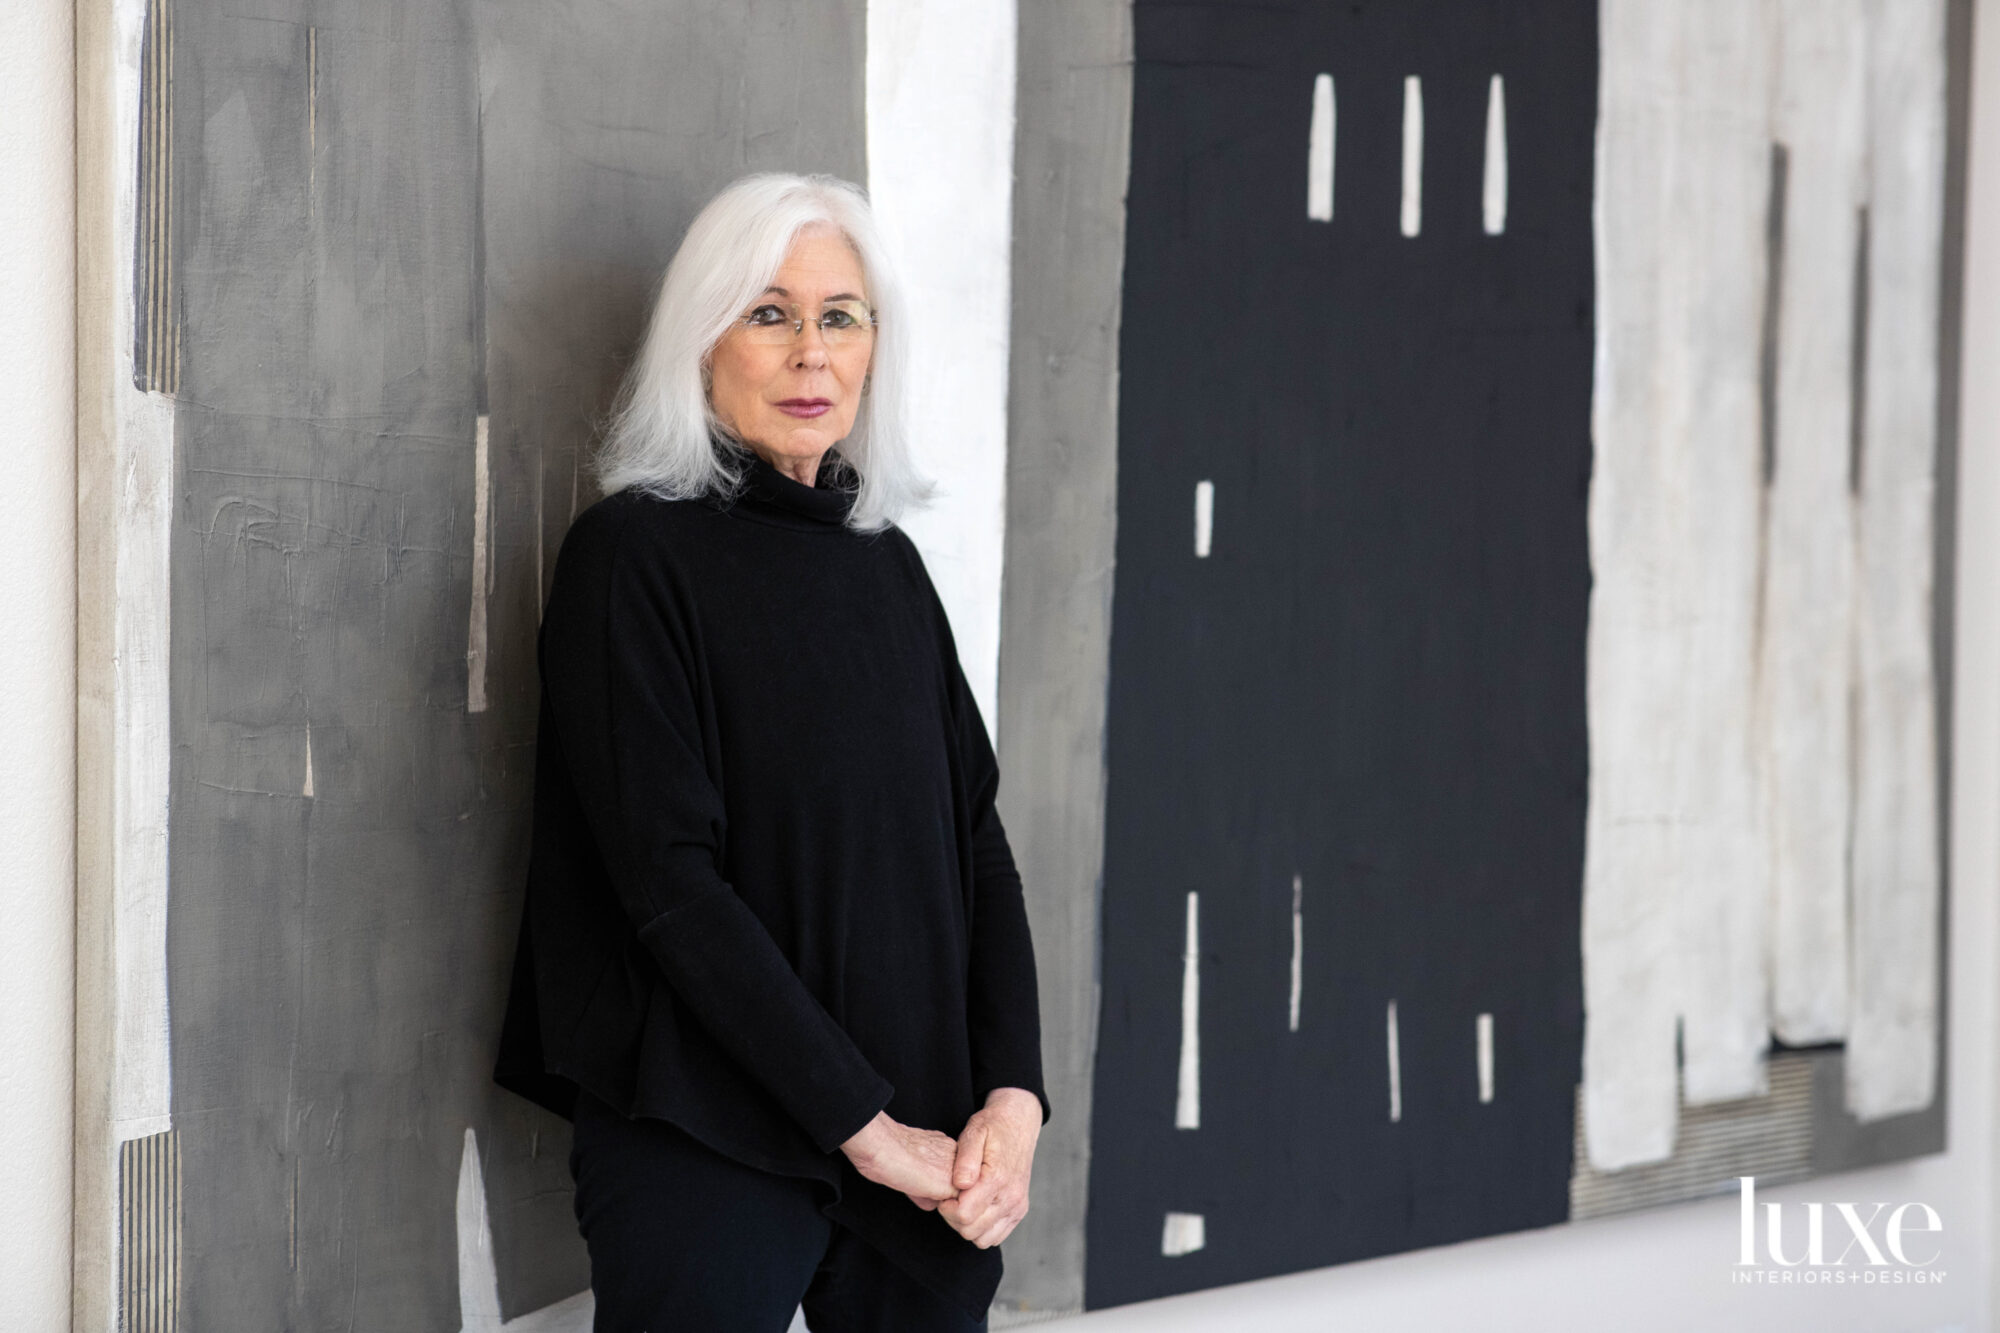 The artist stands in front of a large gray-white-and-black painting.